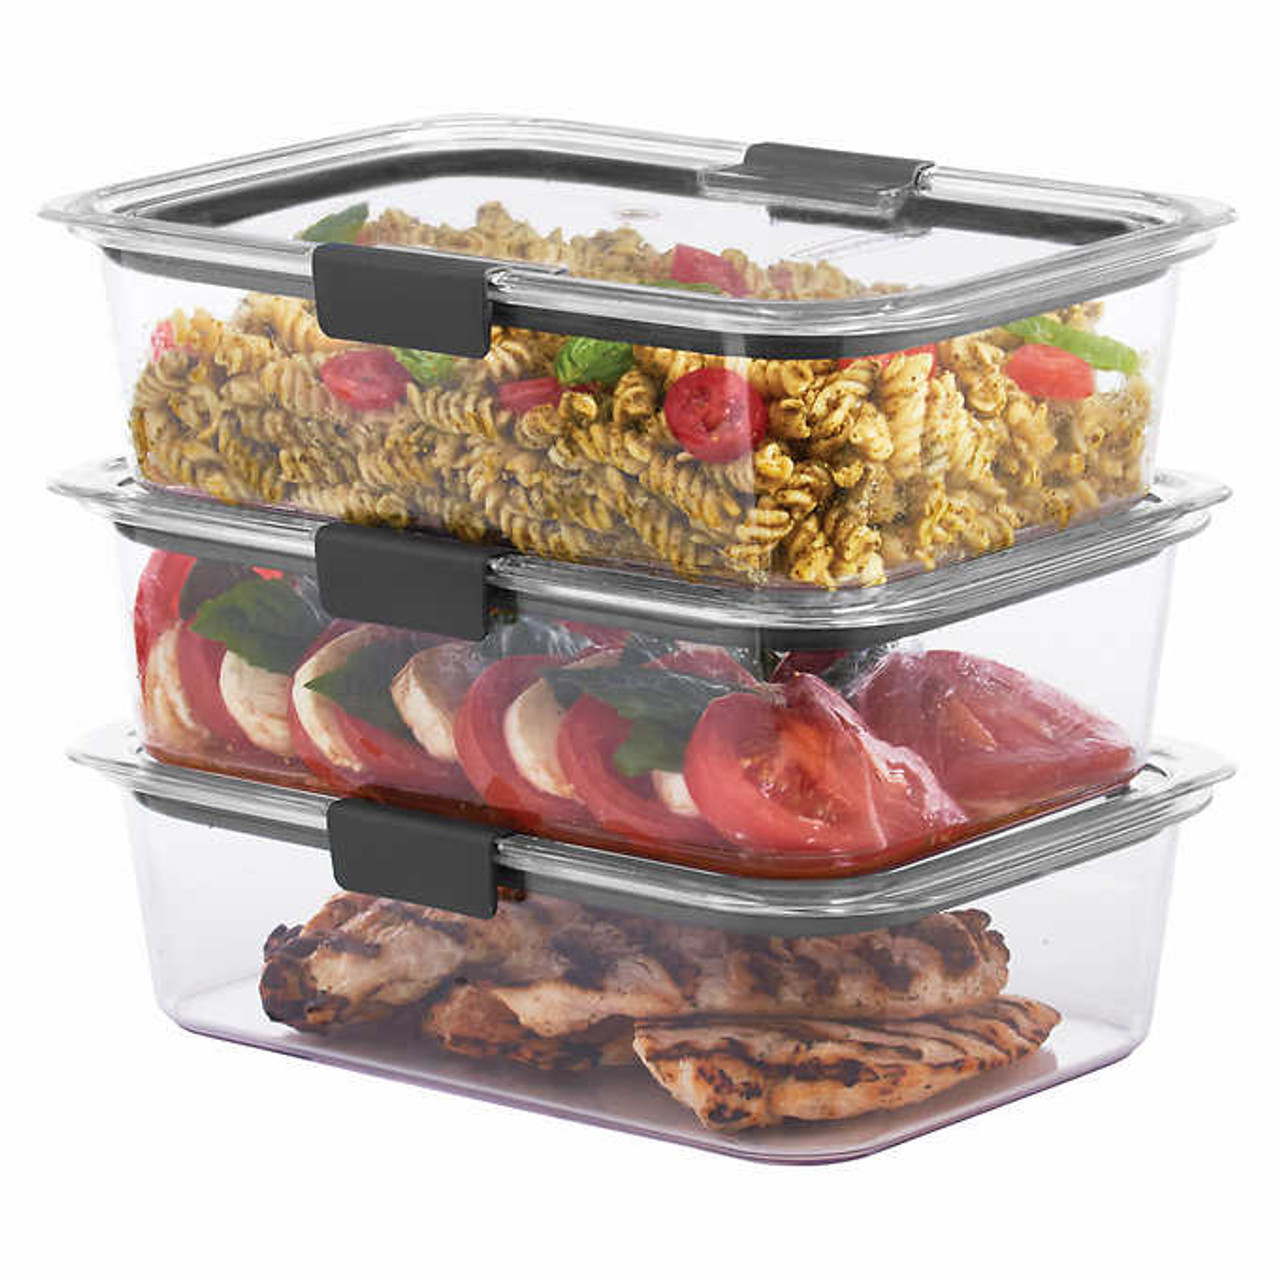 Rubbermaid Brilliance Food Storage Container Set 22 Piece Clear Awesome Rubbermaid Brilliance 60piece Food Storage Containers With Lids